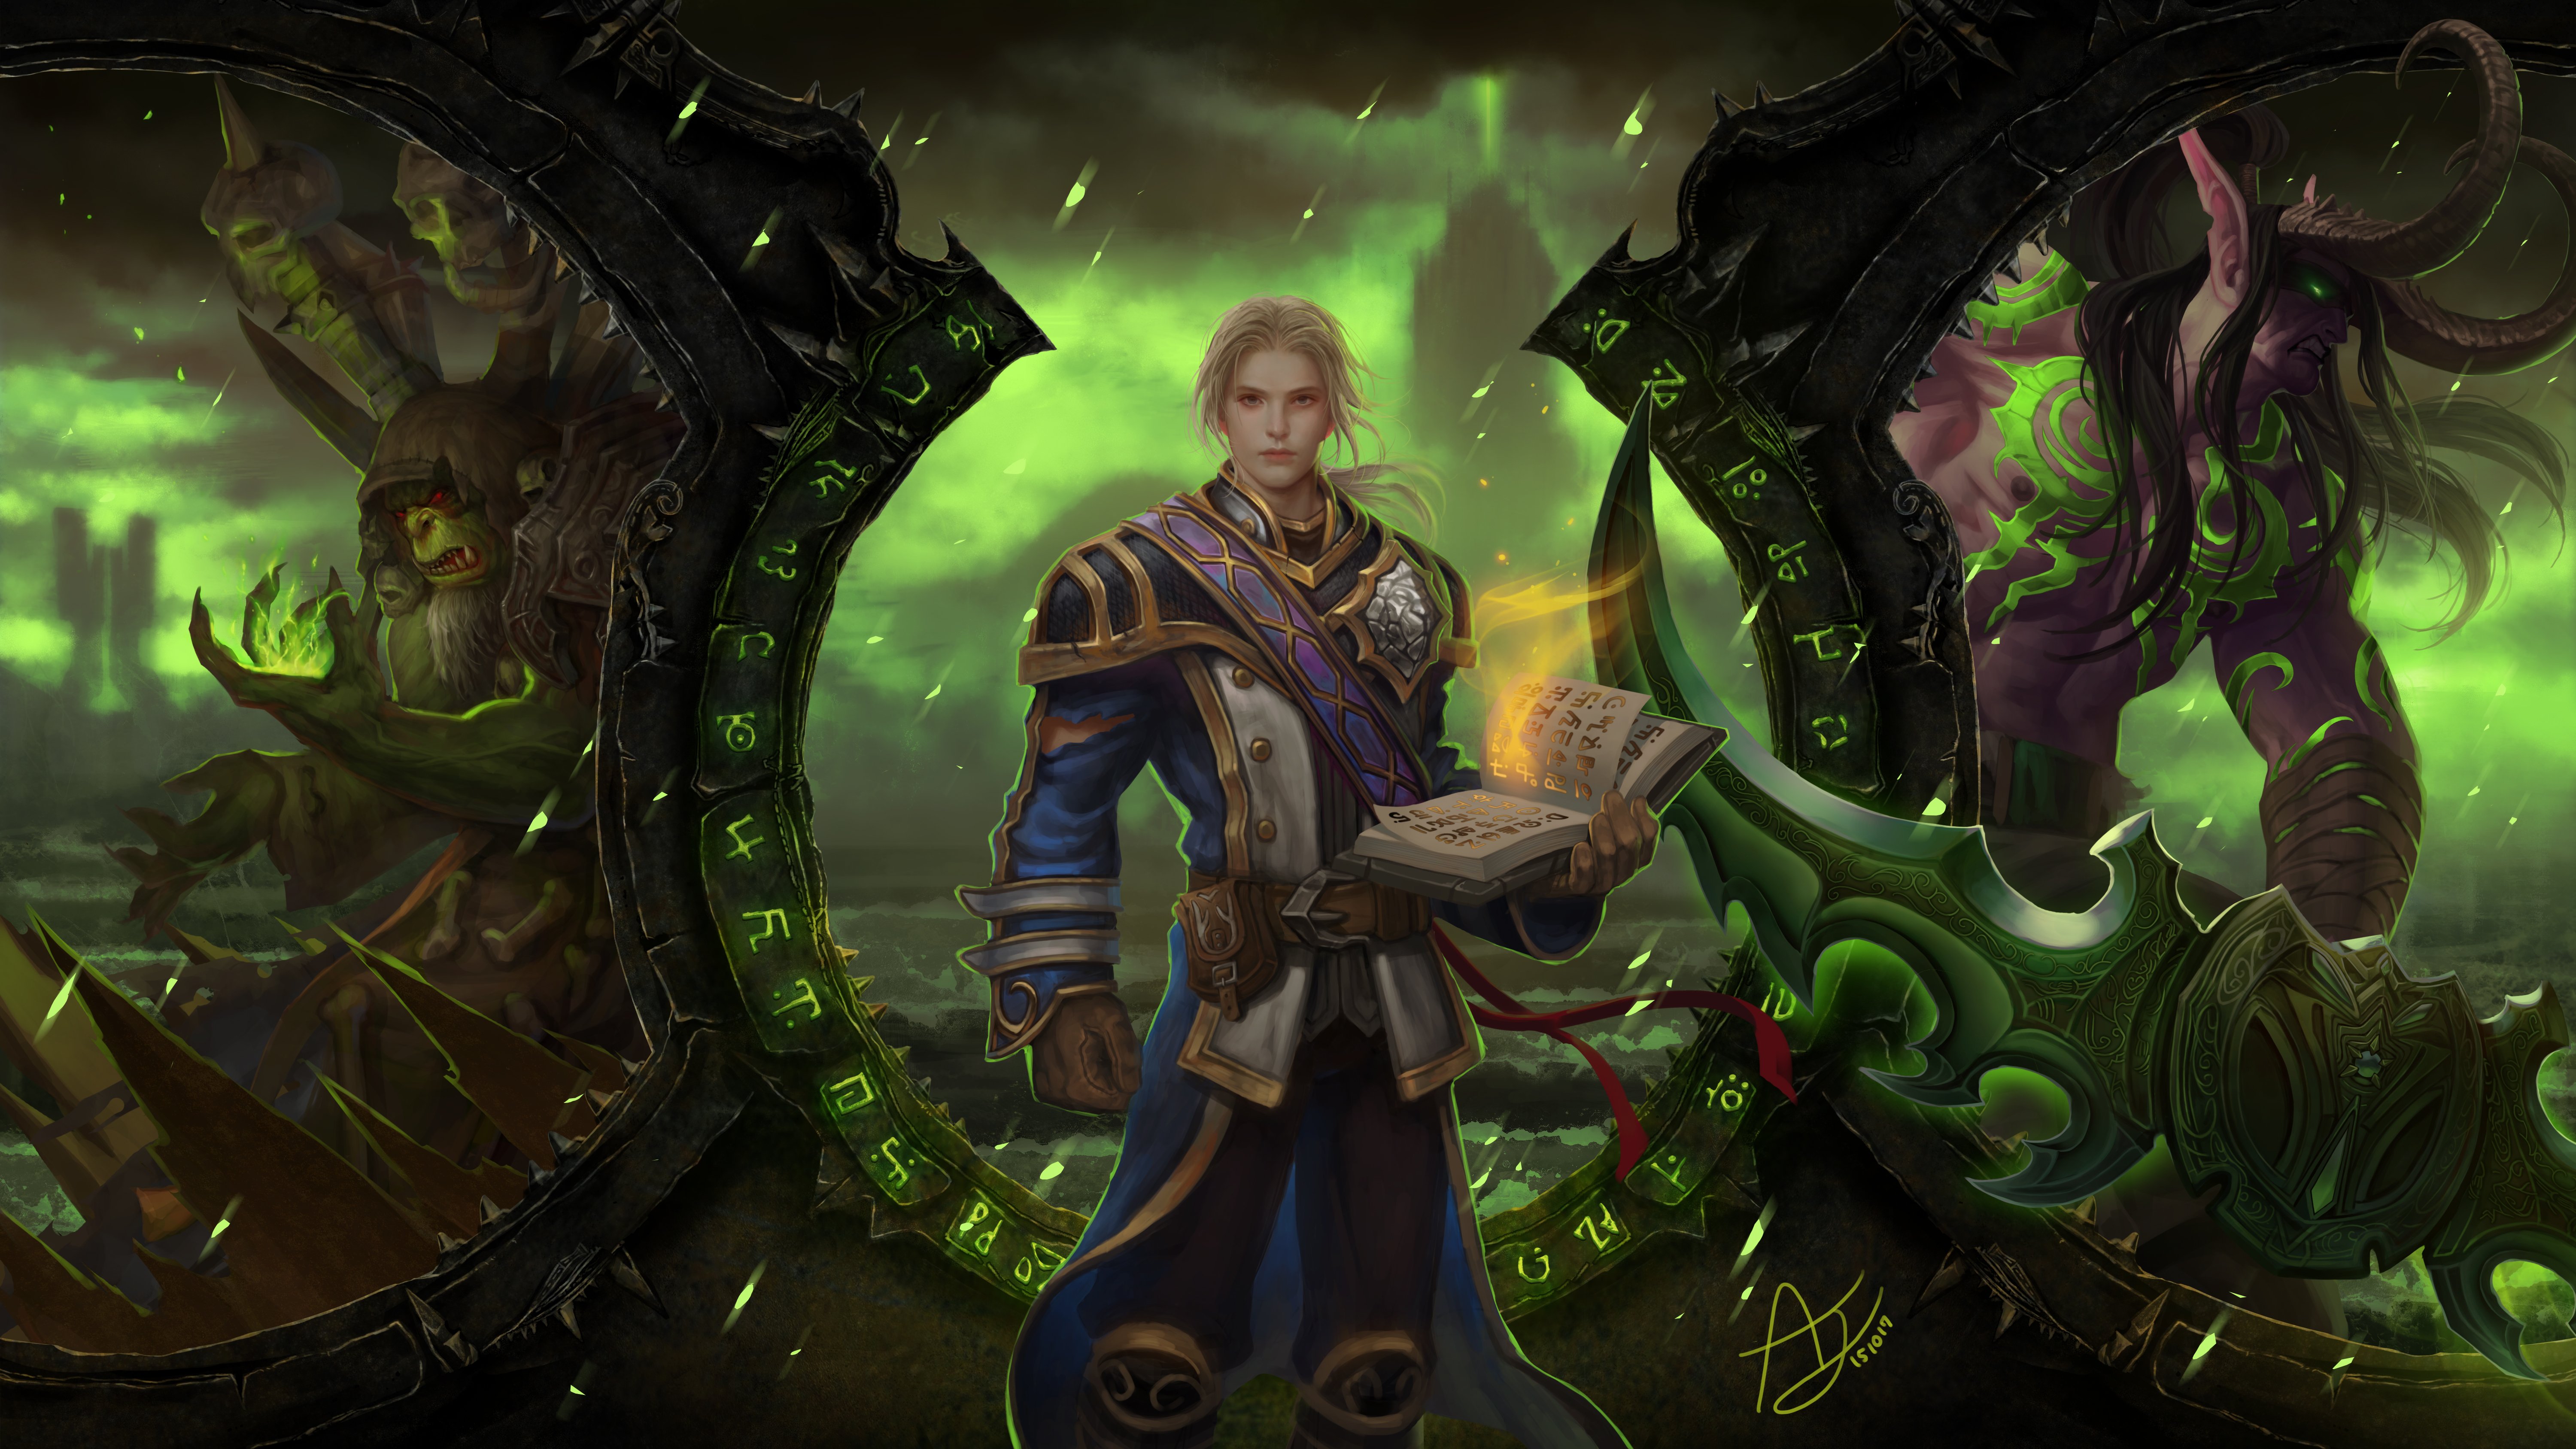 4 Gul'dan (World of Warcraft) HD Wallpapers | Background Images - Wallpaper Abyss